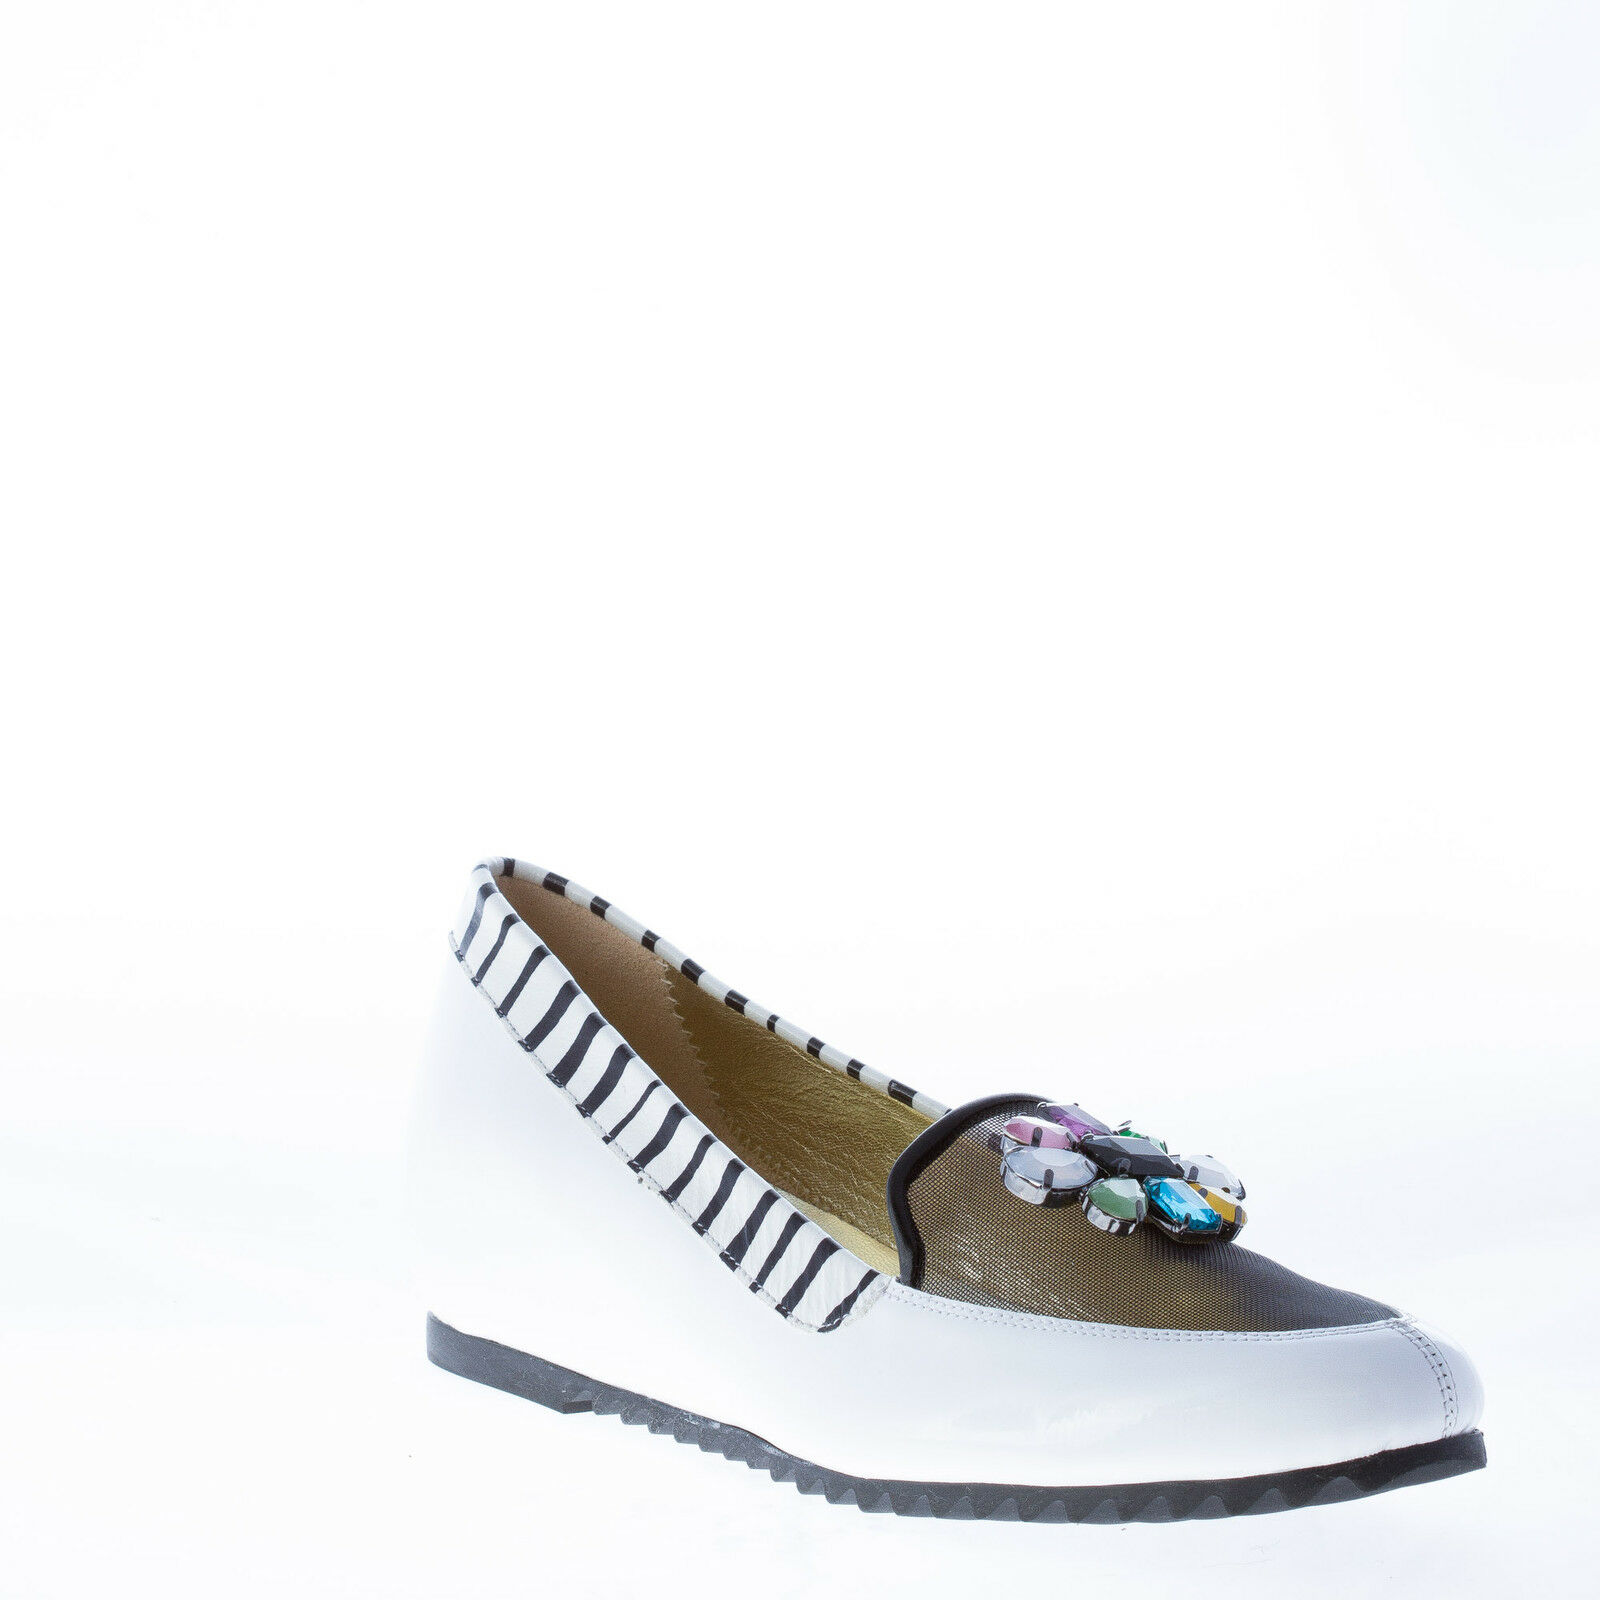 Azuree cannes and Zapatos señora mujer blanco patente Leather animalier Trim and cannes Jewel eade0d